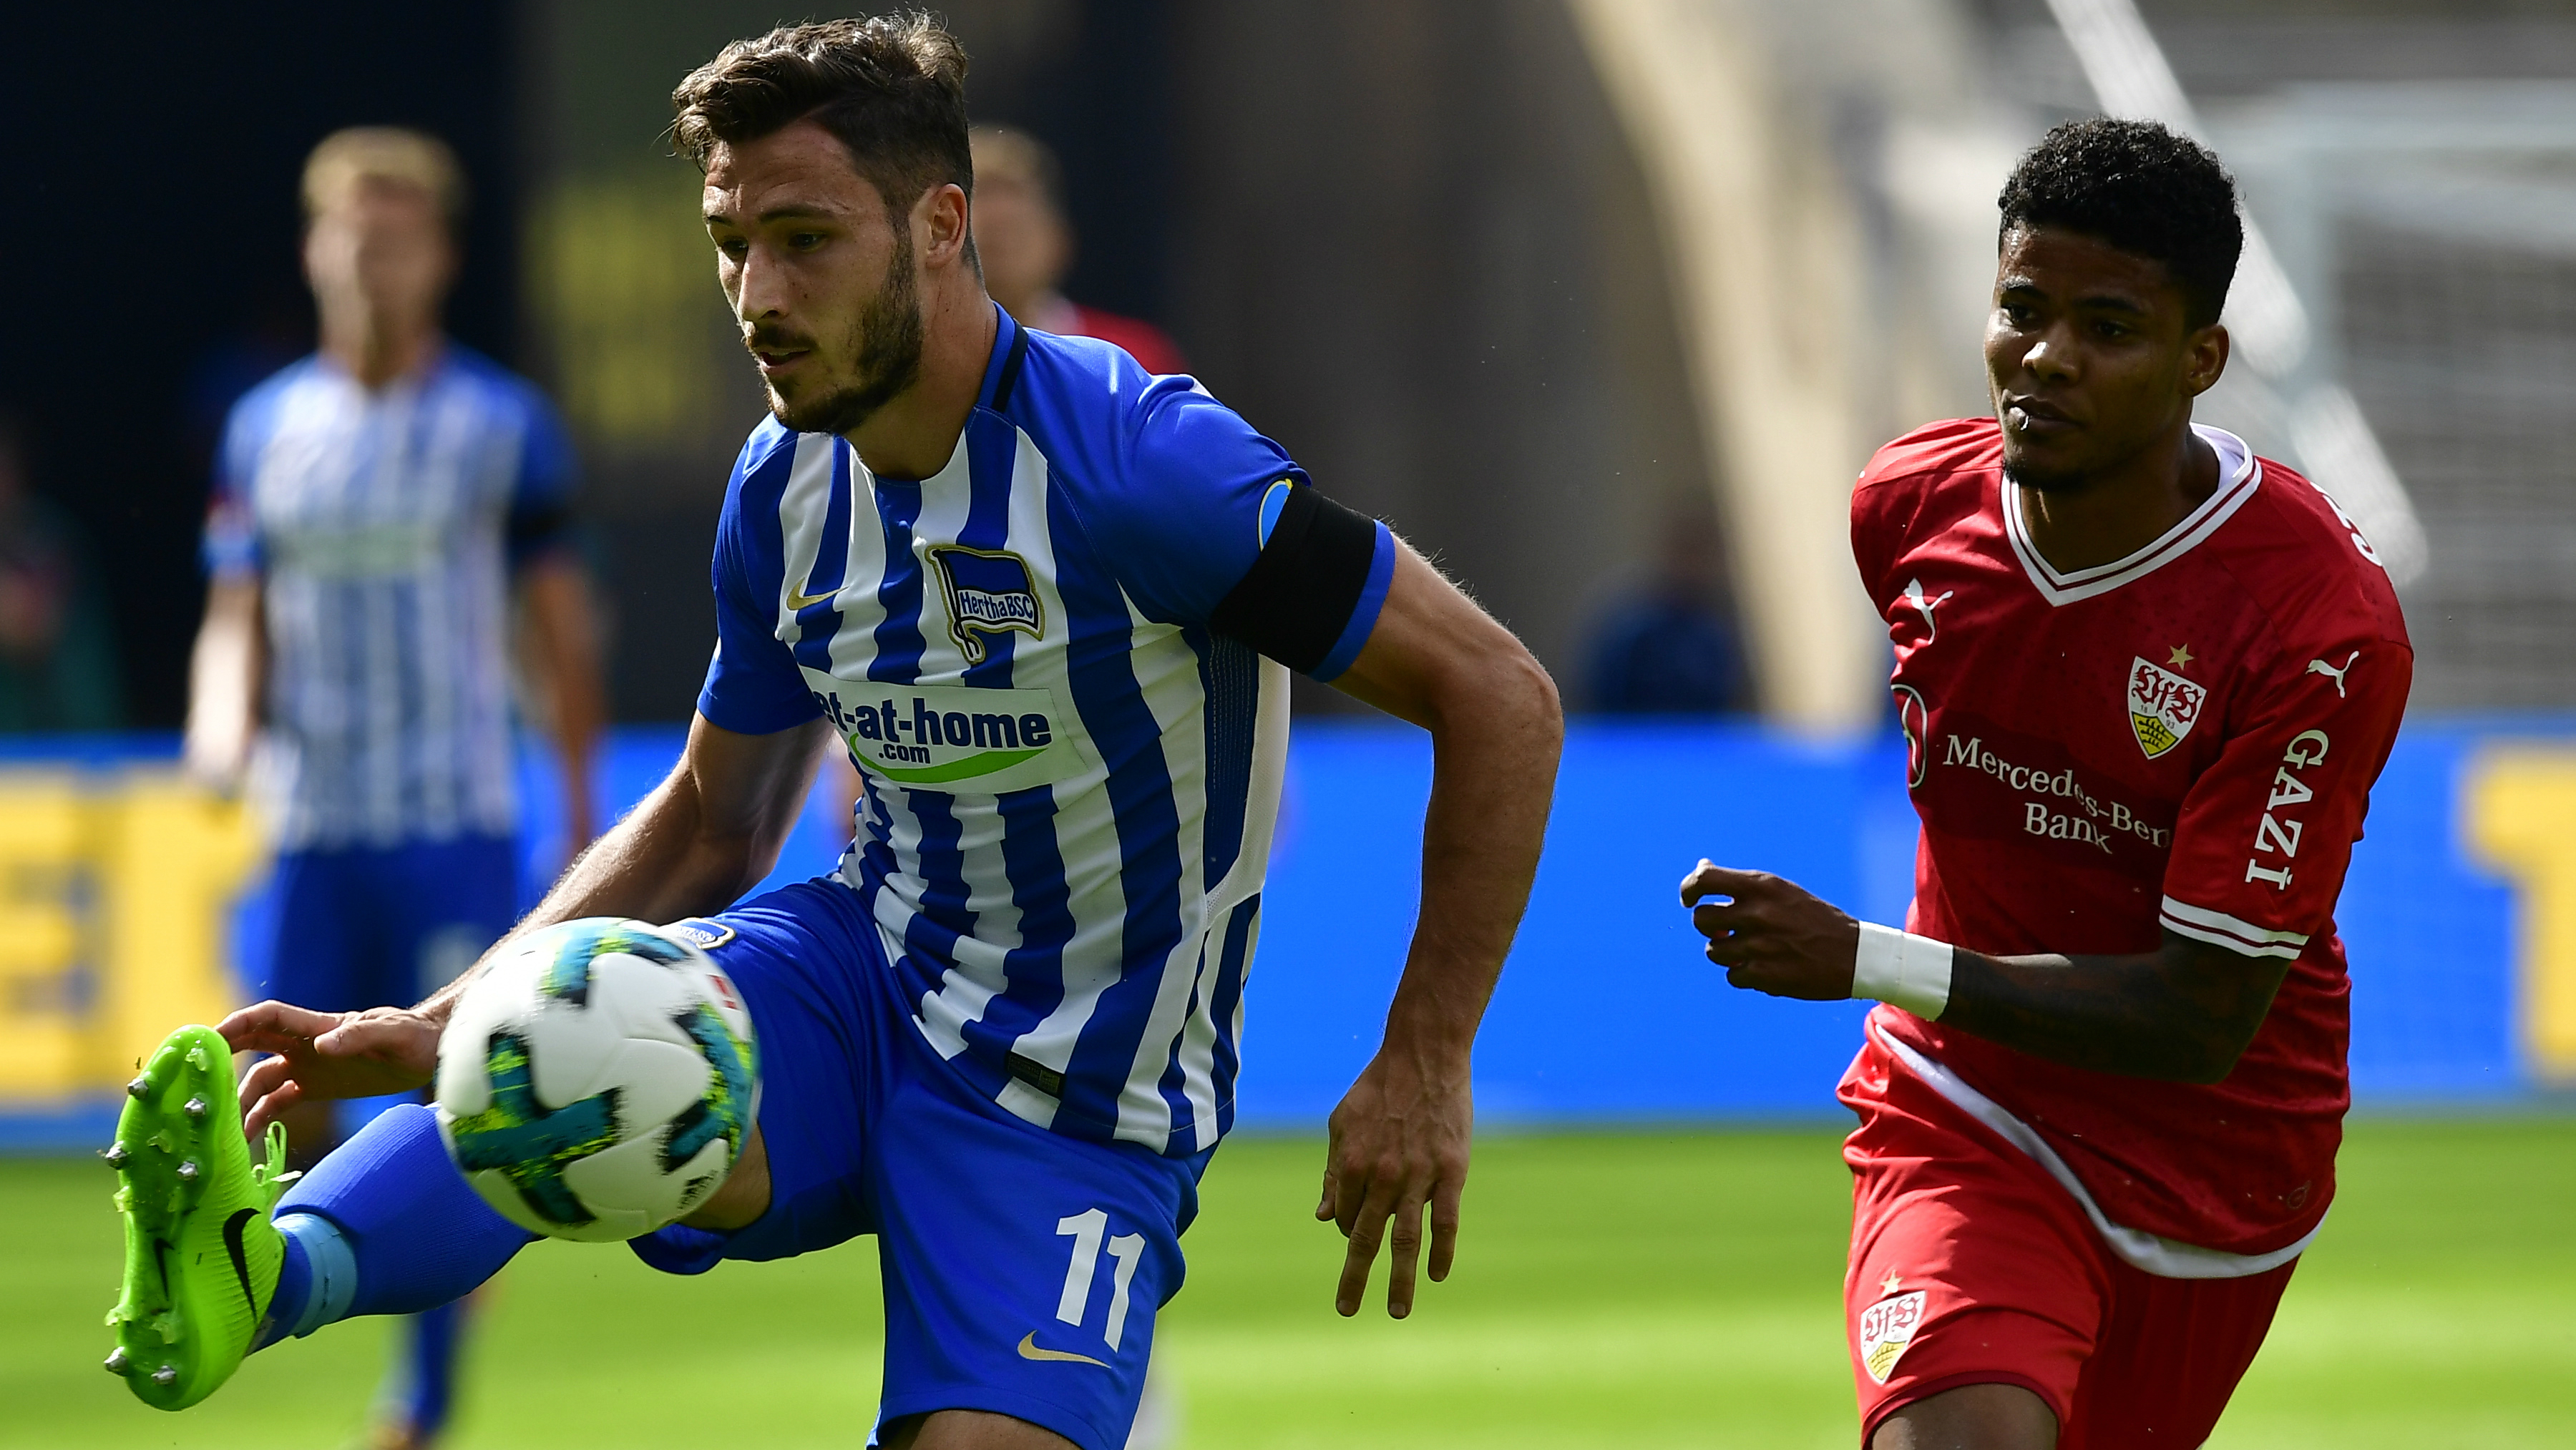 Mathew Leckie was in fine form for Hertha Berlin in their Bundesliga opening day victory over Vfb Stuttgart.